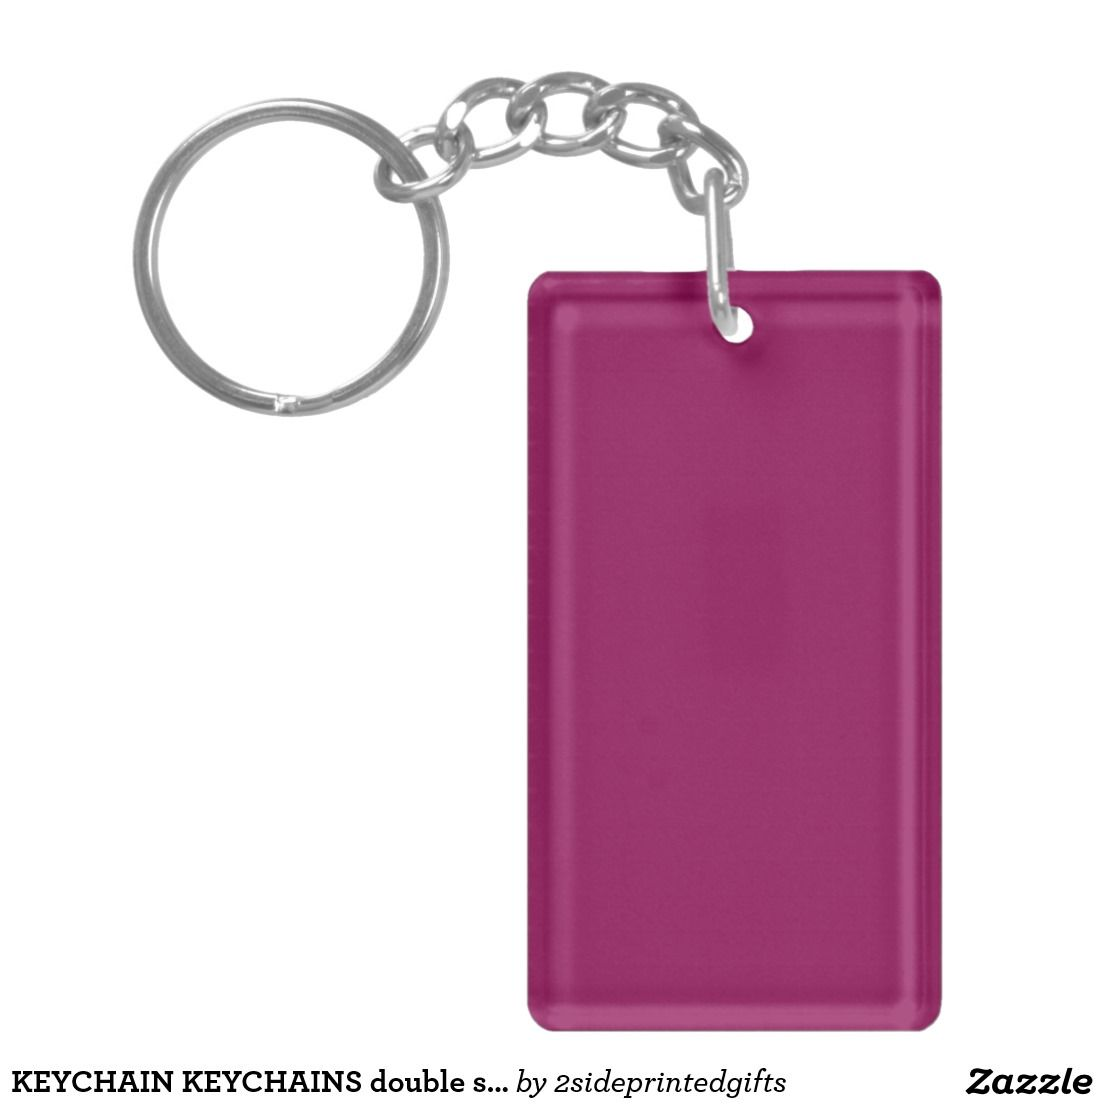 KEYCHAIN KEYCHAINS double sided ADD text photo DIY | Zazzle